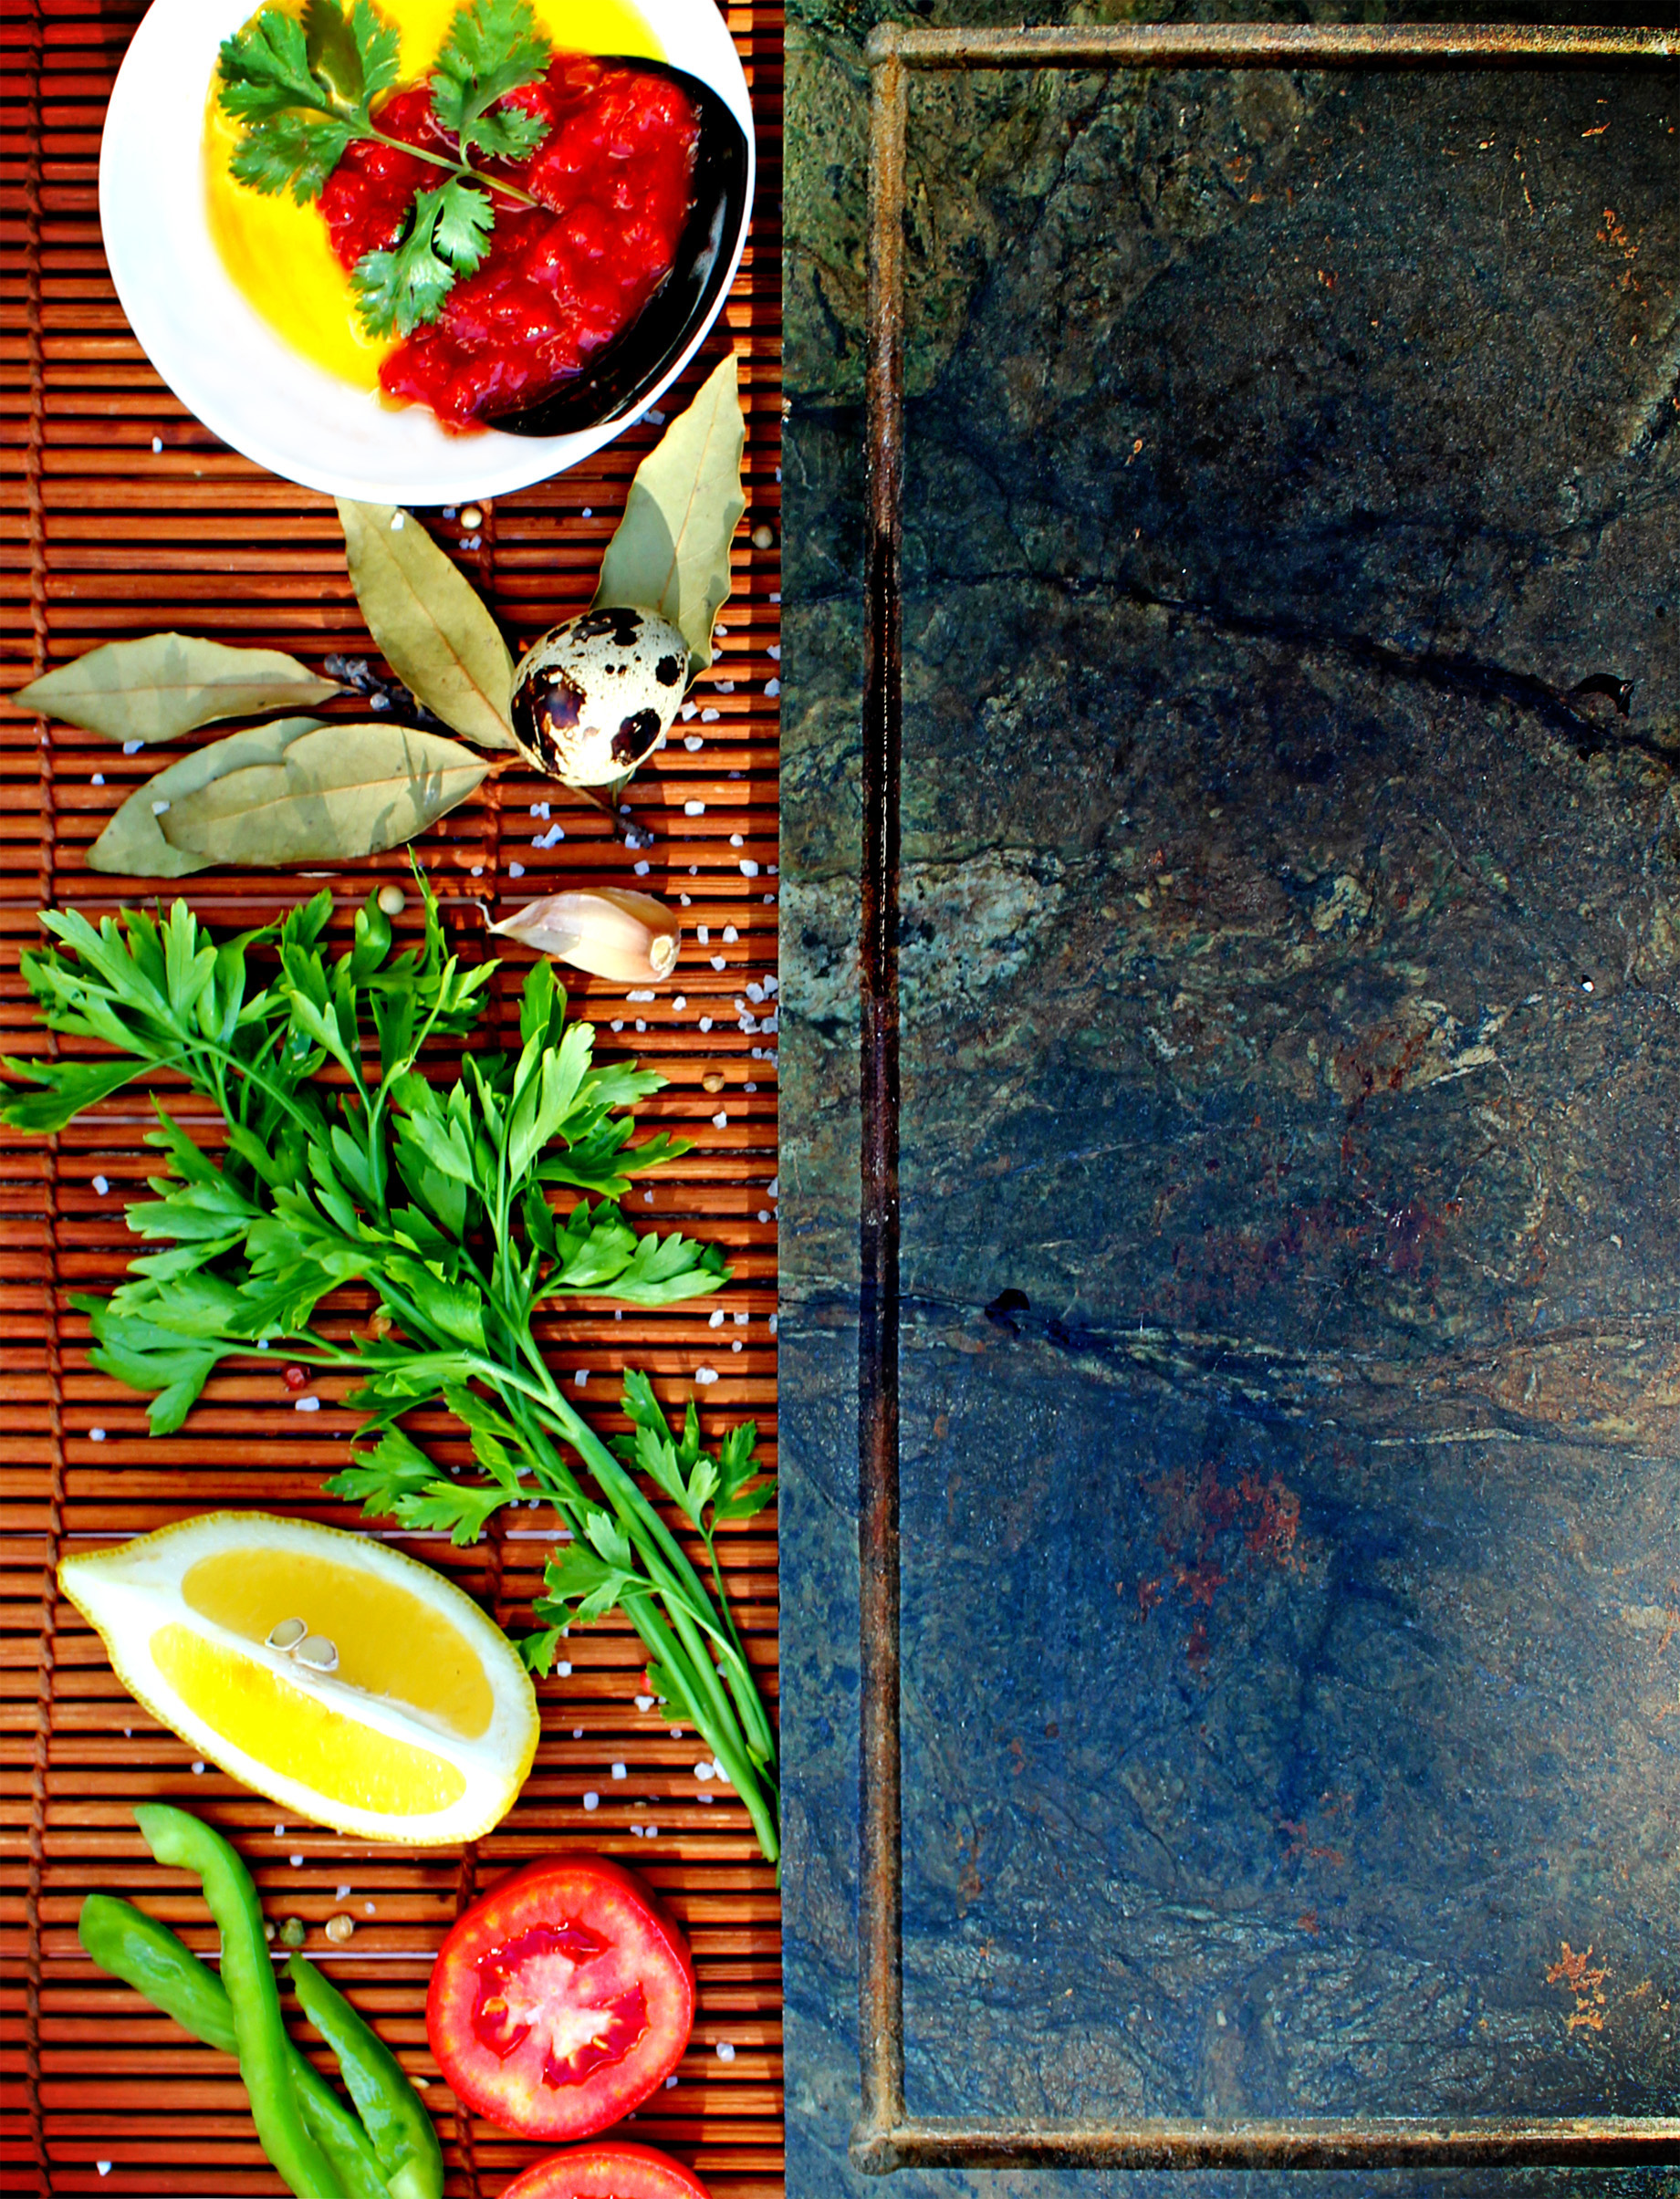 Basic mediterranean cooking ingredients, Bay, Olive, Table, Style, HQ Photo